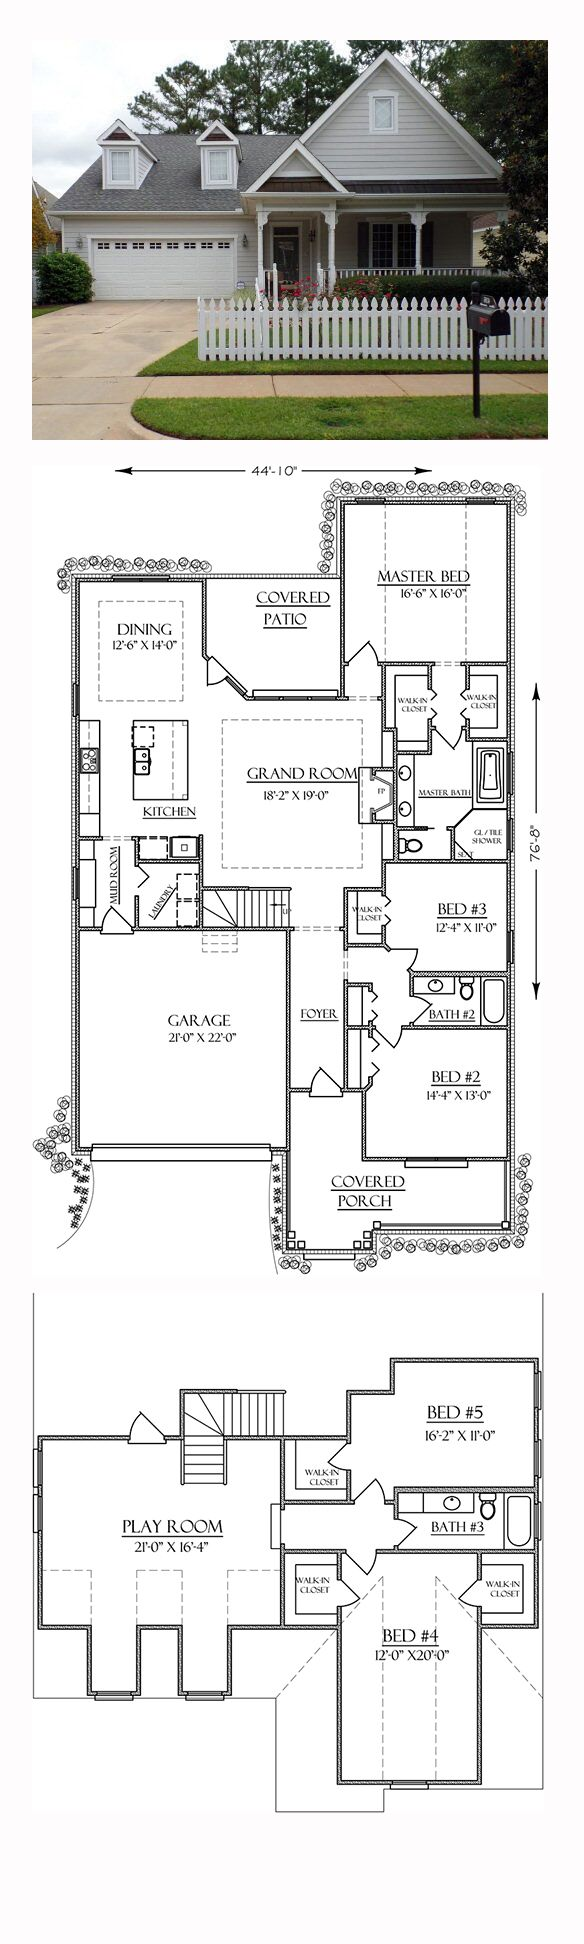 Traditional House Plan 59952 | Total Living Area: 1870 Sq. Ft., 3 Bedrooms  And 2.5 Bathrooms. (Iu0027d Get Rid Of The Half Bath, And Make The Flex Spacu2026